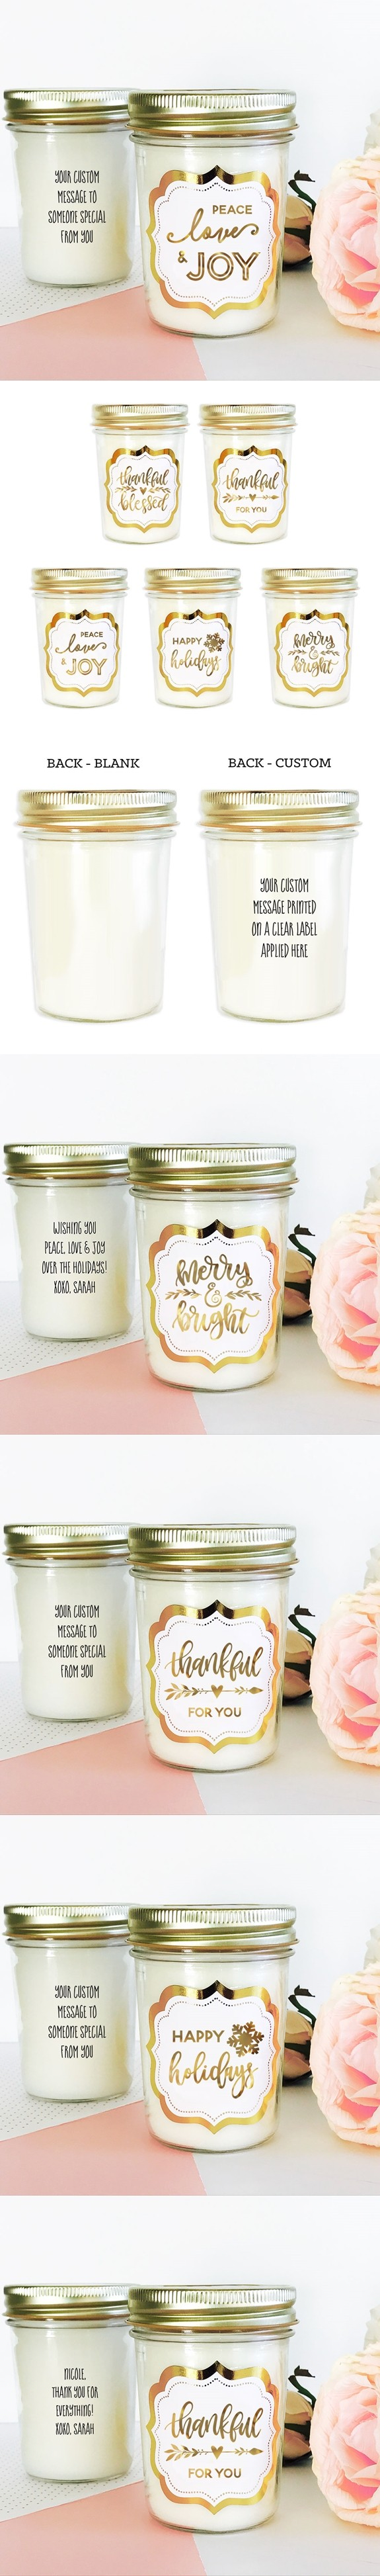 Event Blossom Personalizable Holiday Mason Jar Candle (5 Designs)